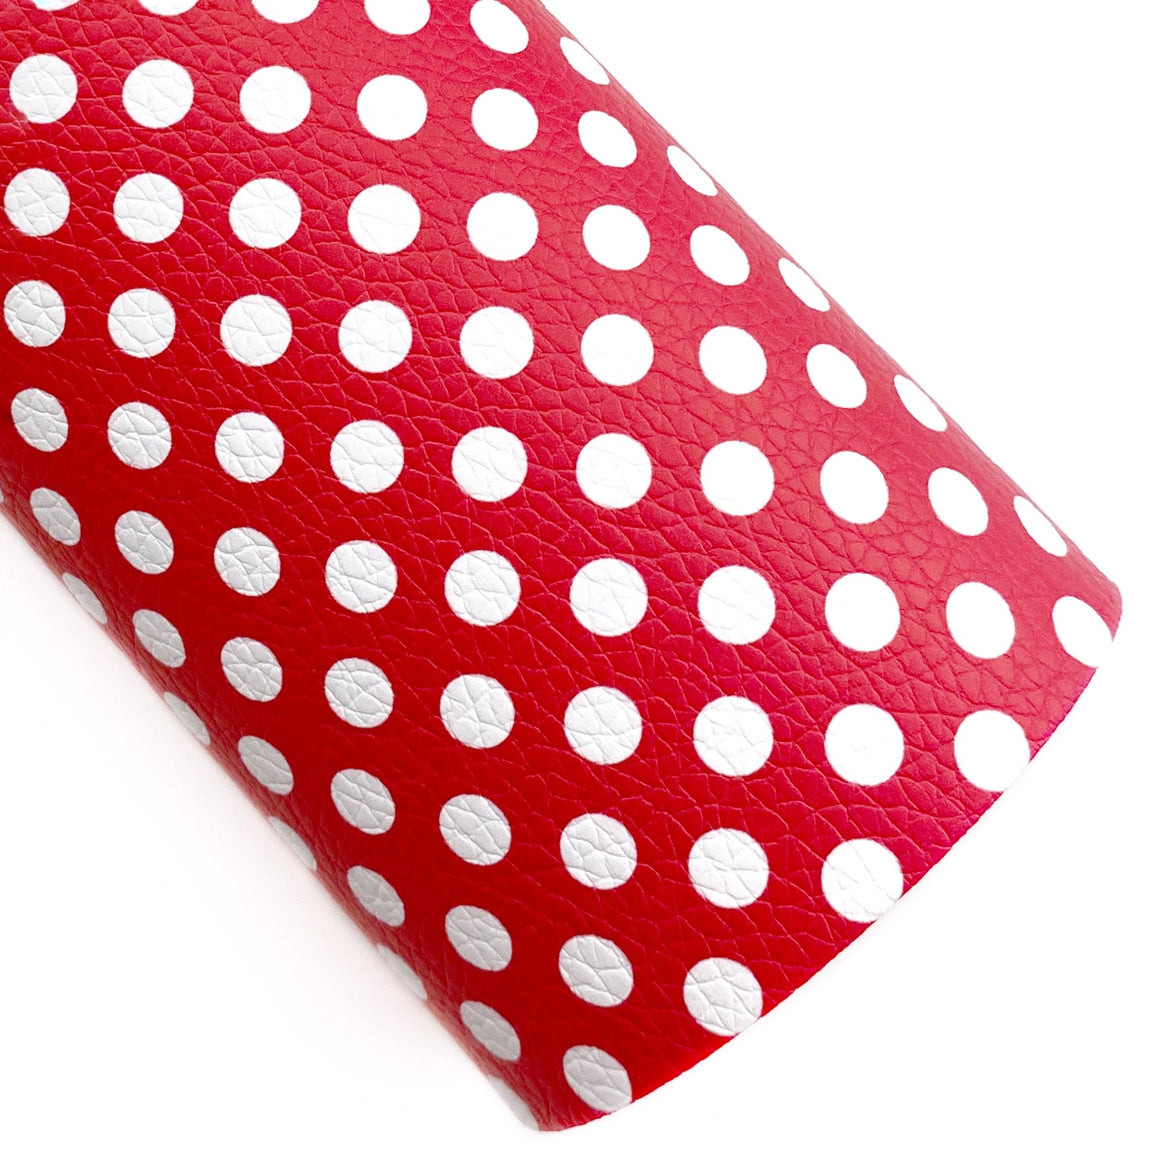 Rosy Red Polka Dots Vegan Leather